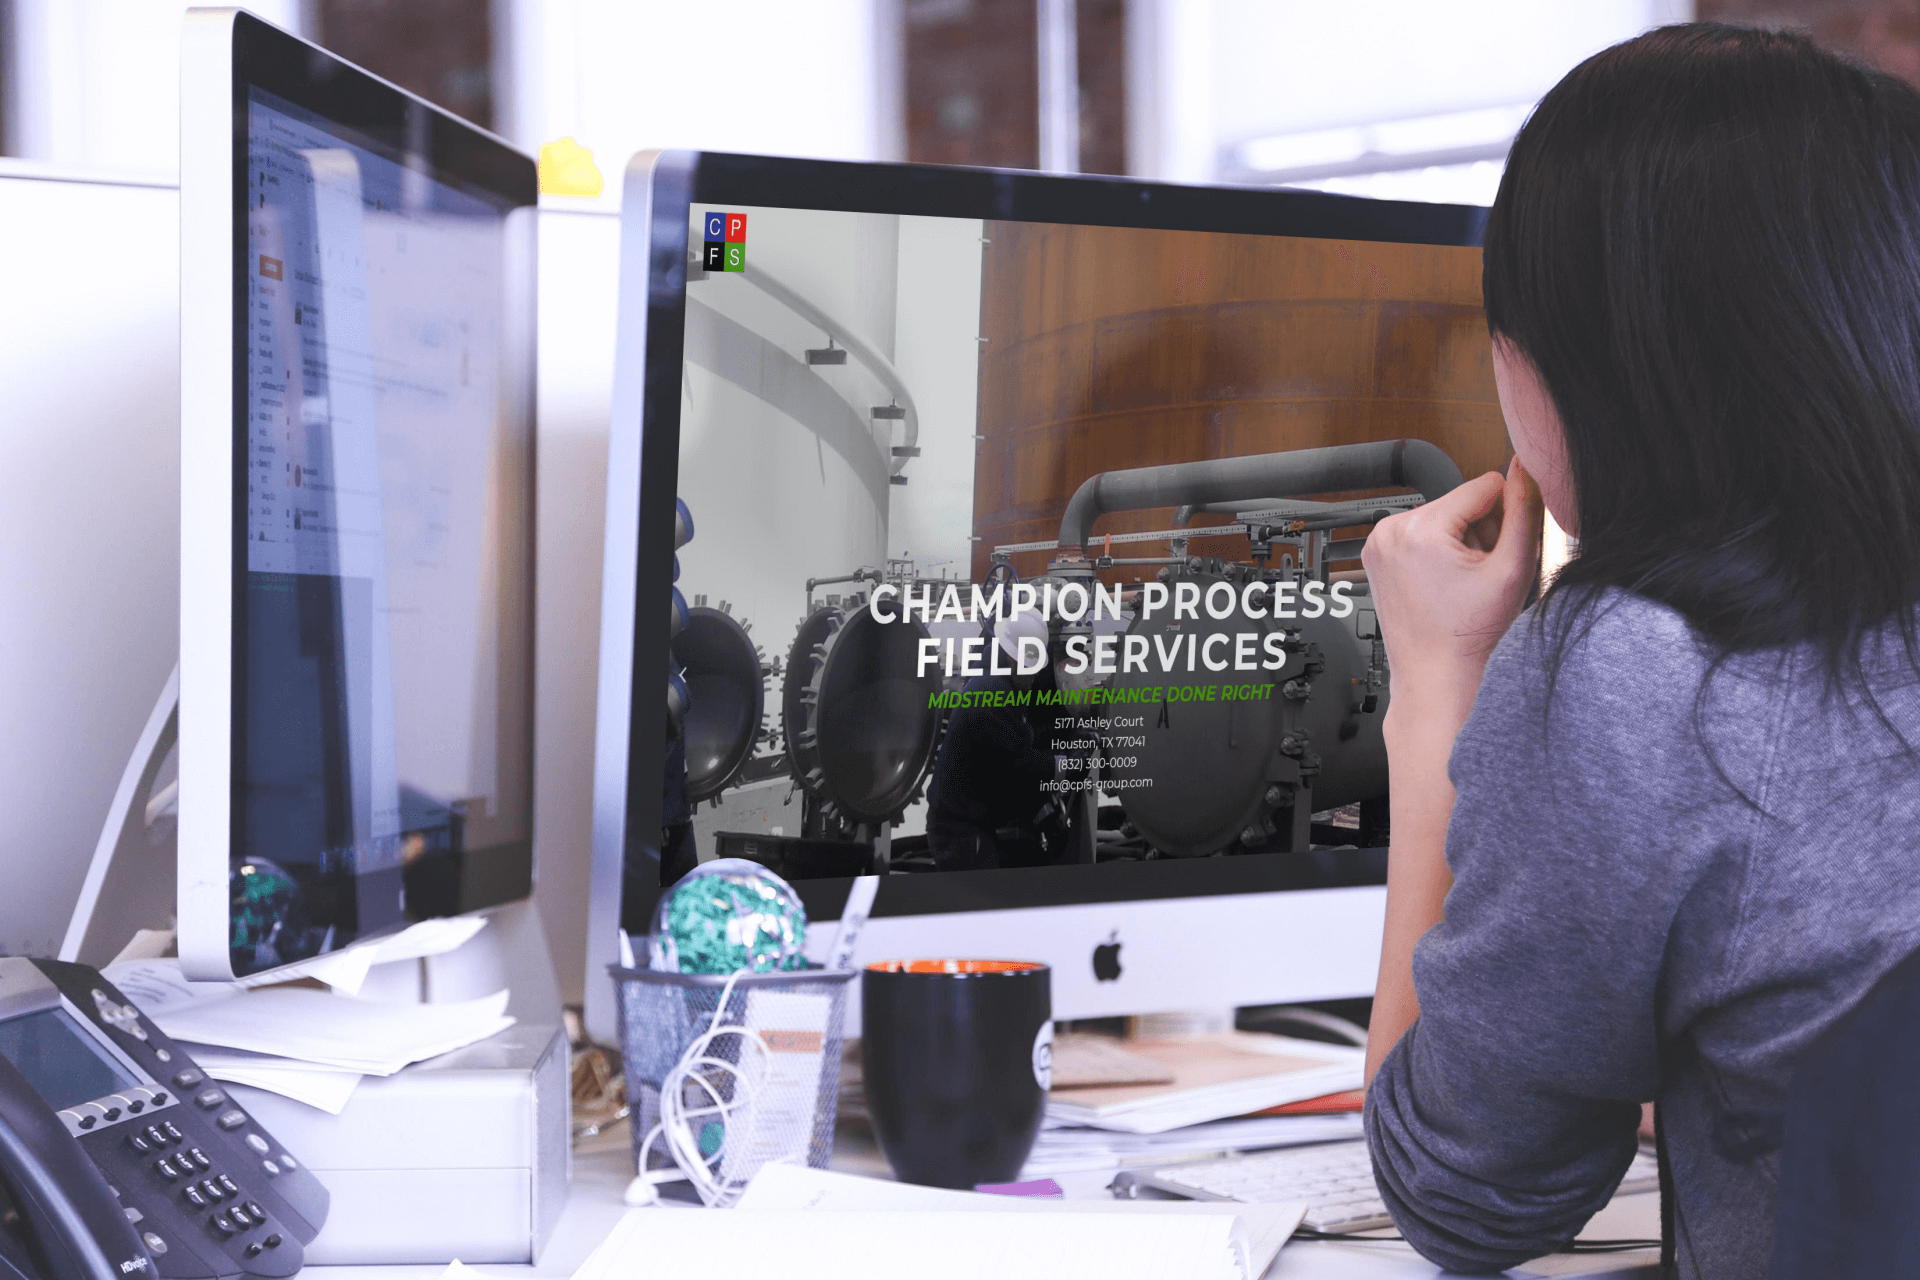 Champion Process Field Services Website Design